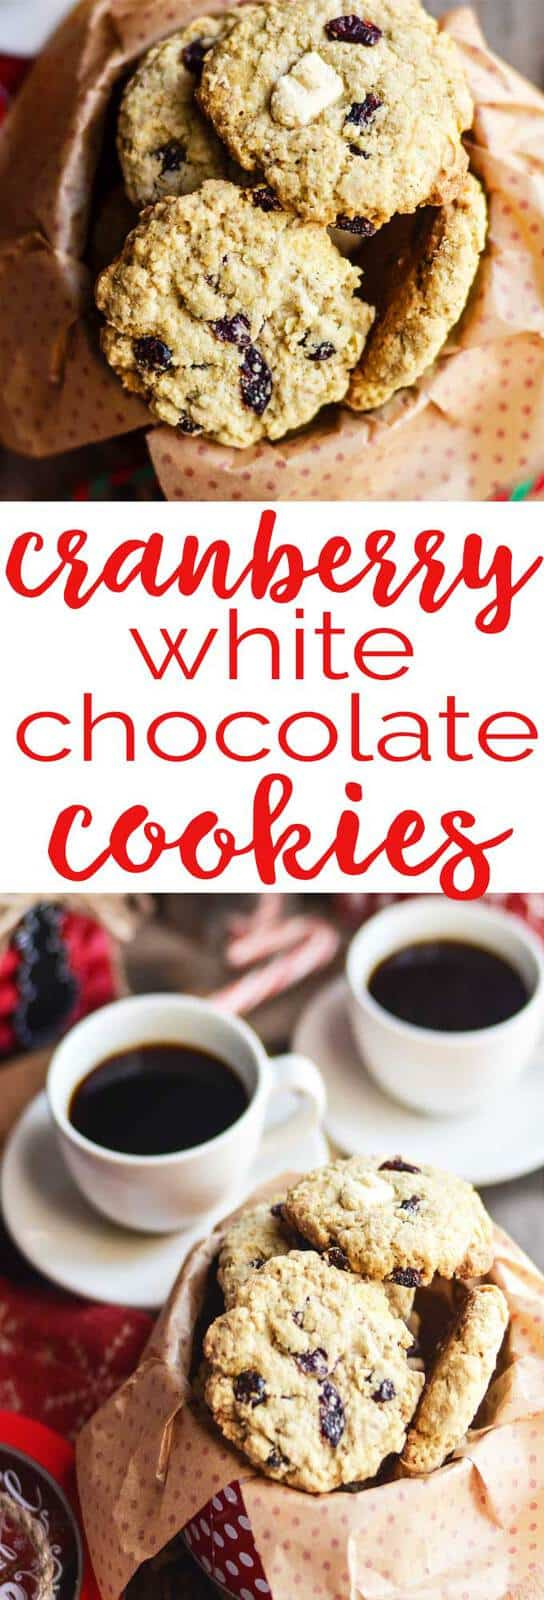 Oatmeal Cranberry White Chocolate Cookies | The Happier Homemaker